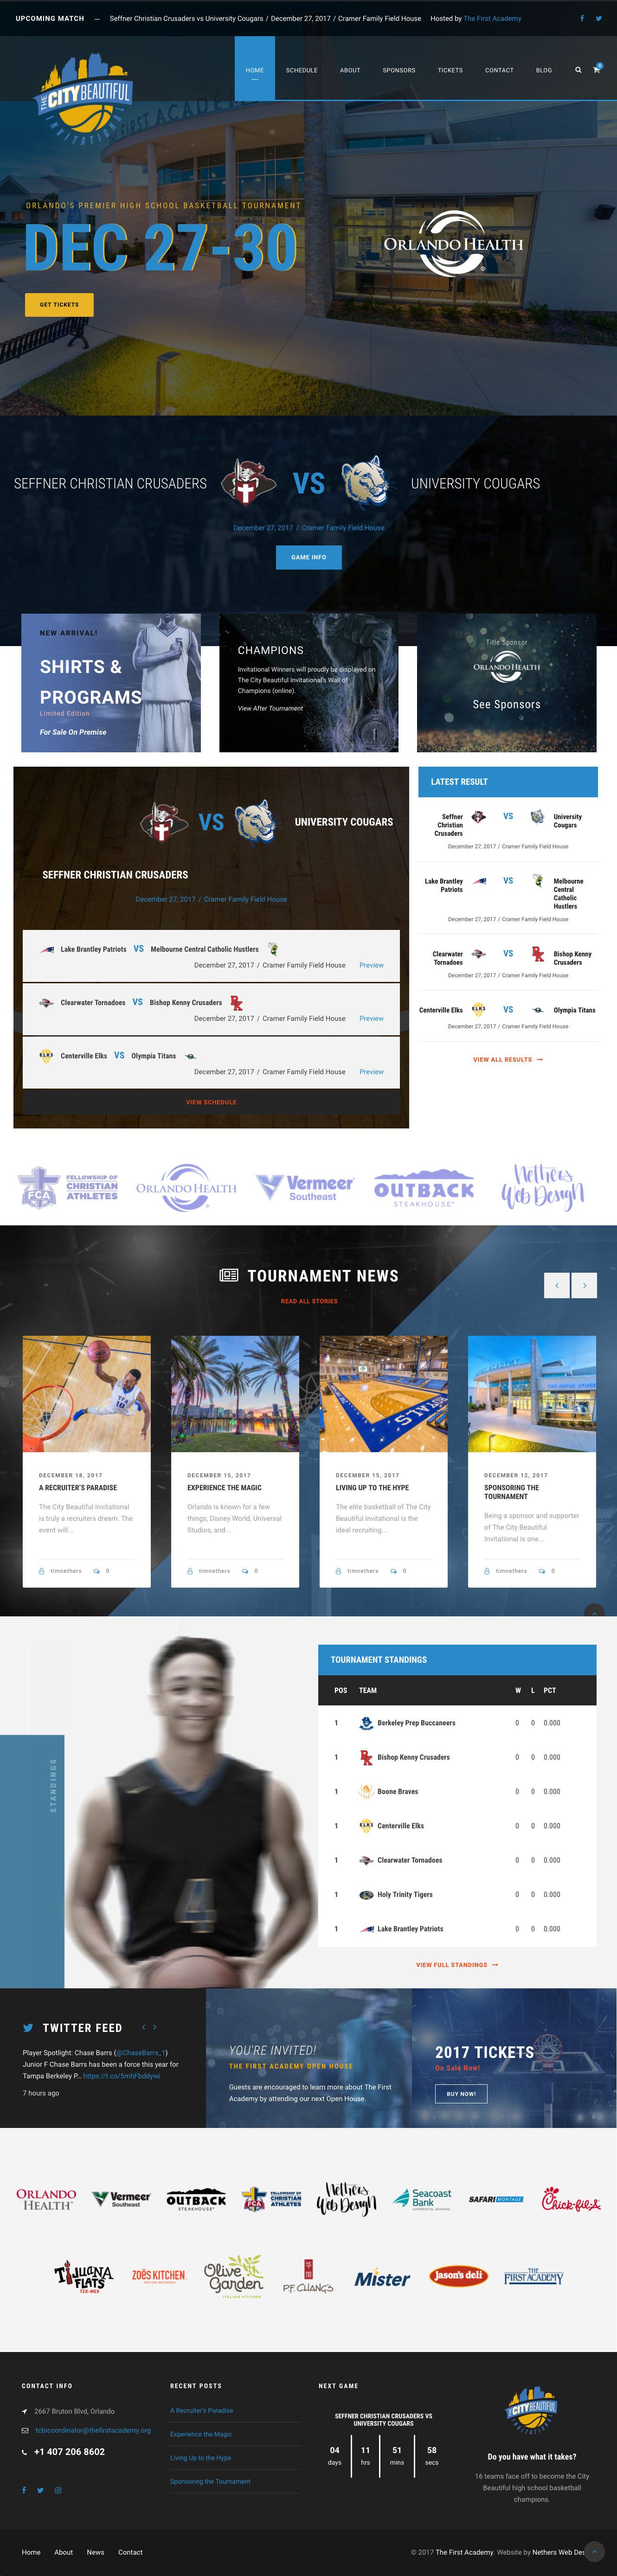 The City Beautiful Invitational - Website Design for Basketball Tournaments